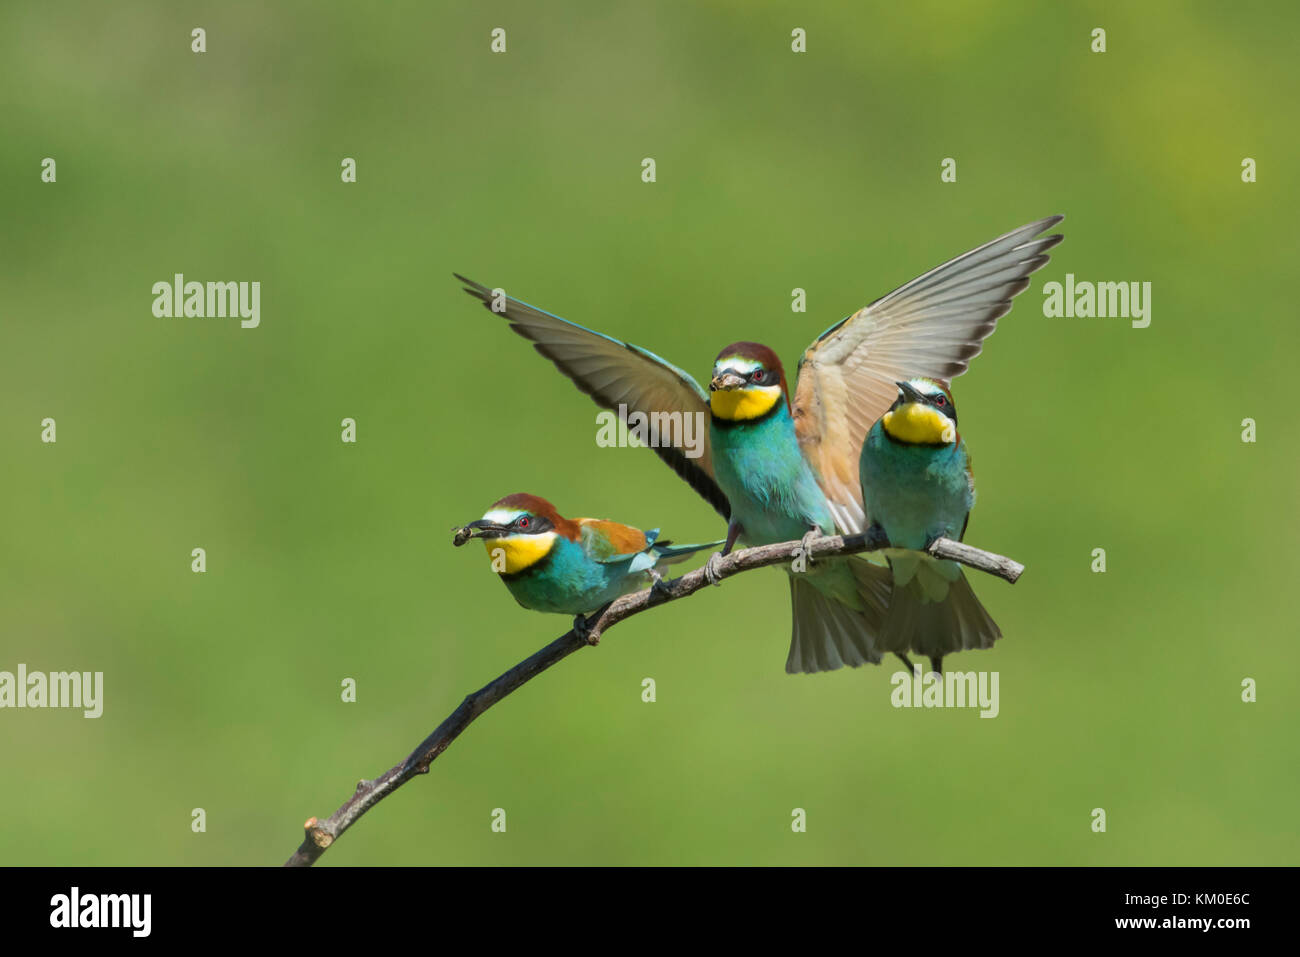 Bienenfresser, European bee eater, Merops apiaster Stock Photo